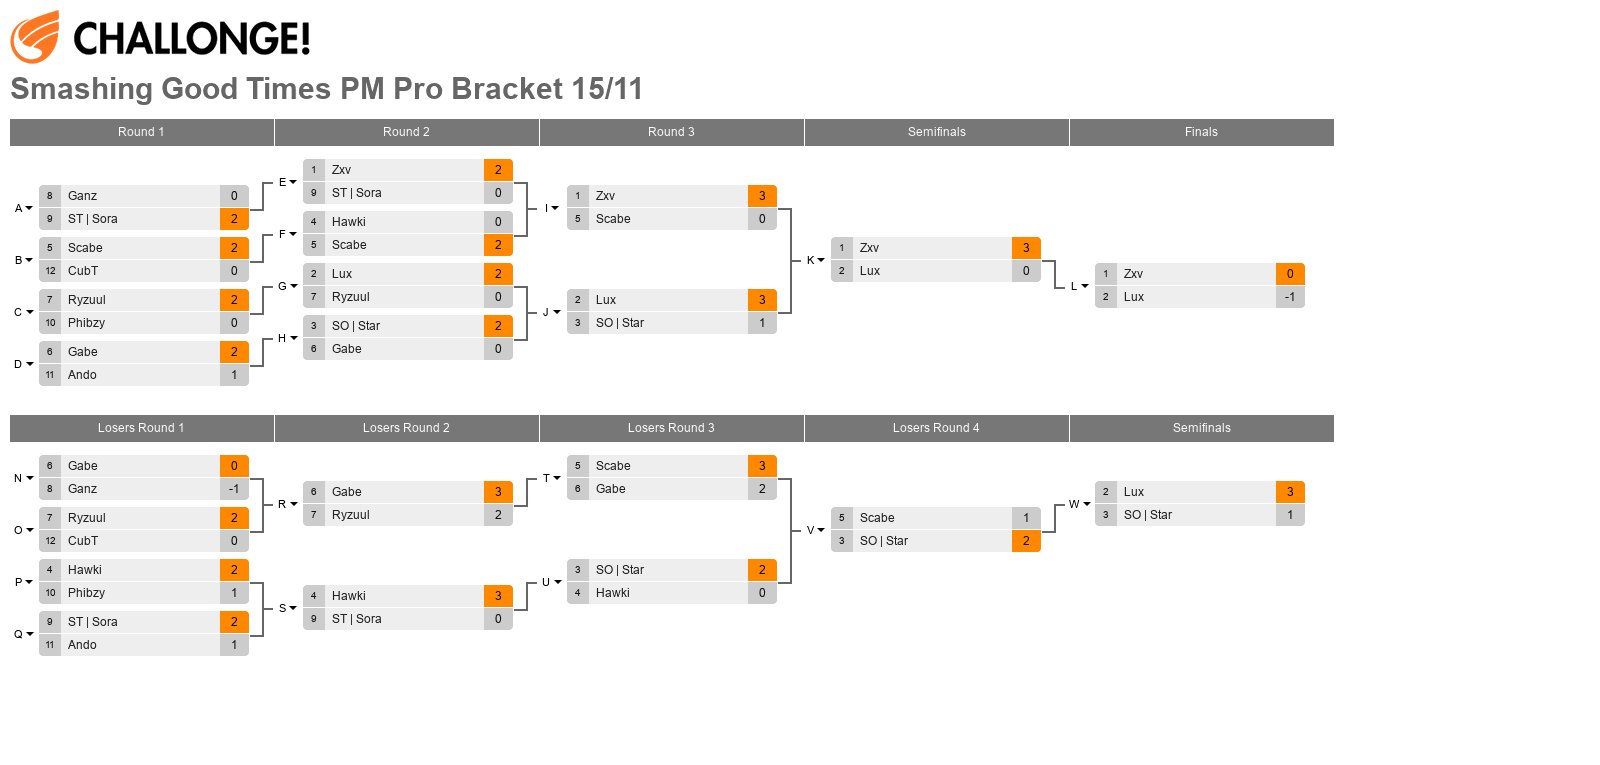 Smashing Good Times PM Pro Bracket 15/11 [From Pools of 25 Entrants]